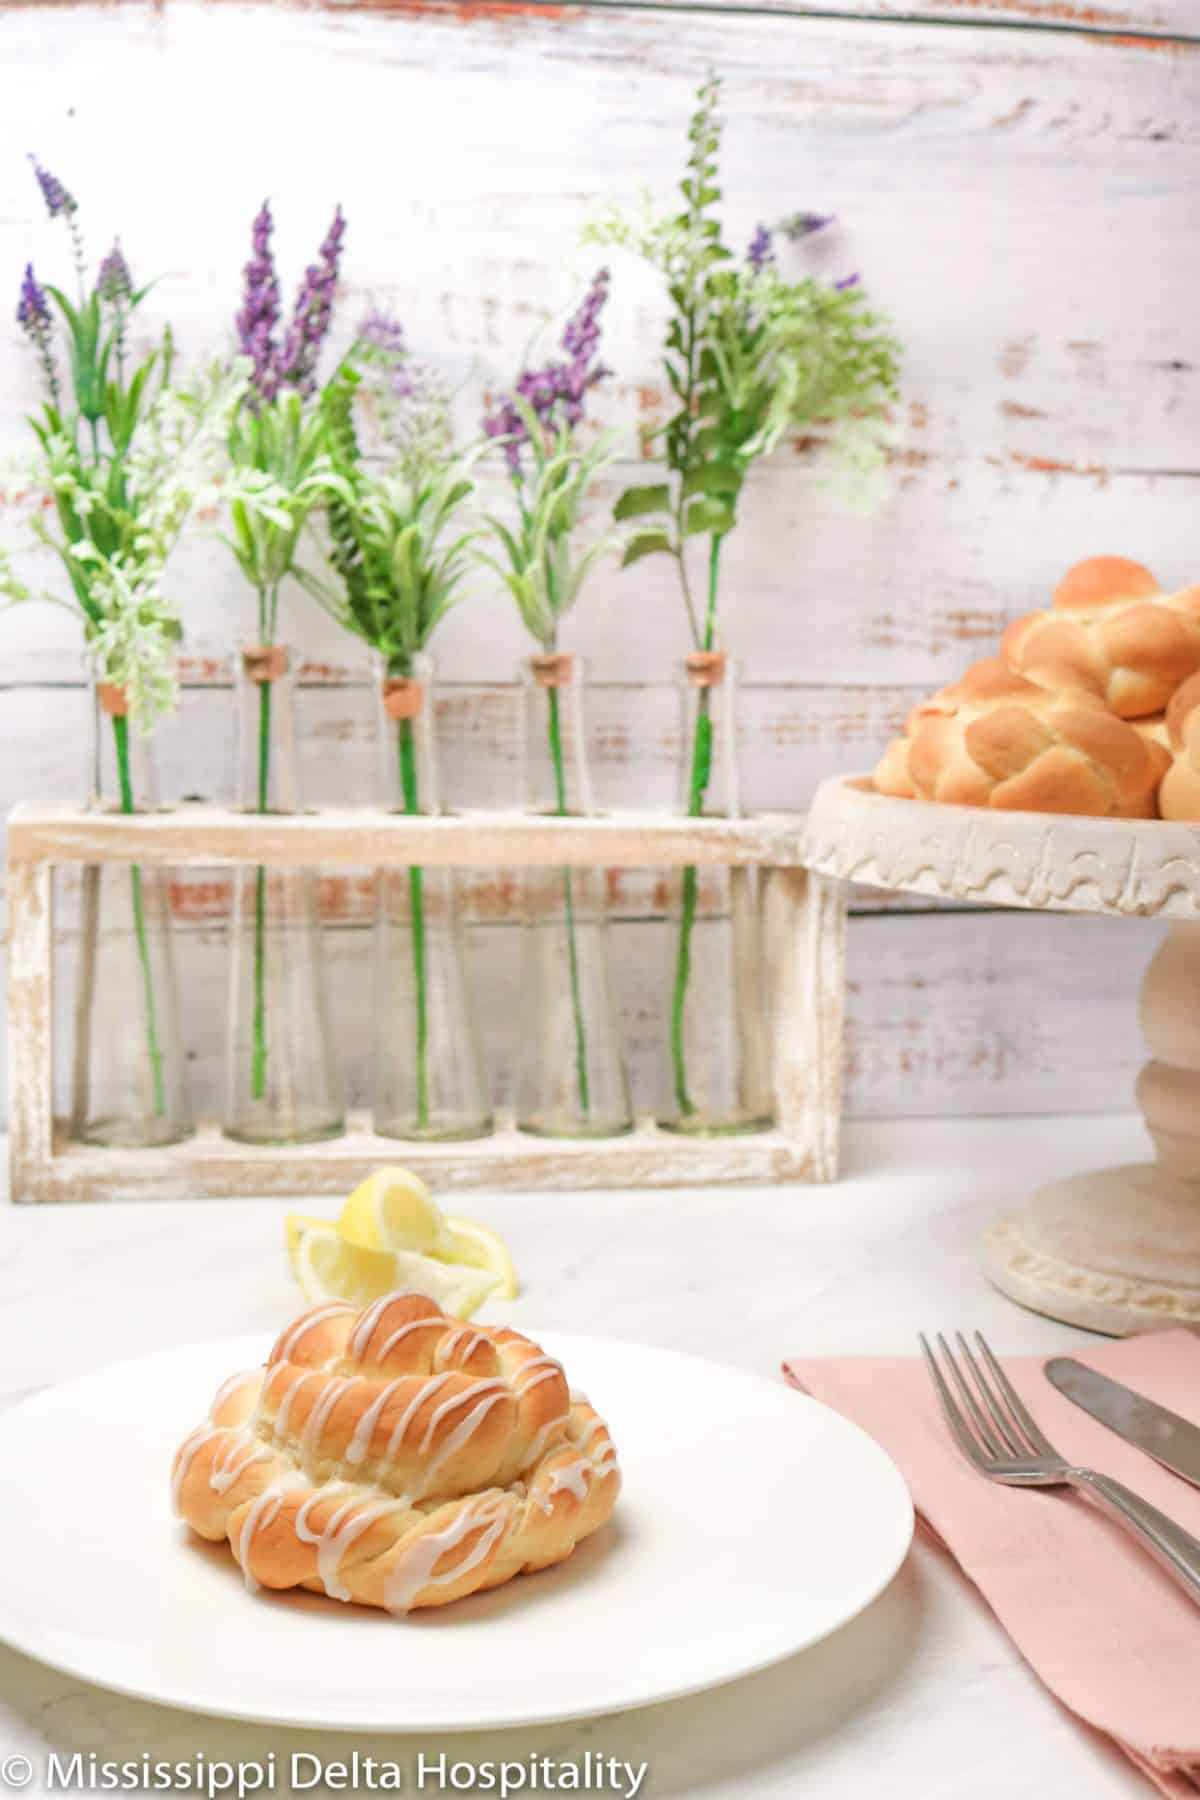 a glazed lemon knot on a white plate with a pink napkin and a fork and knife. In the background is a antiqued cake plate with lemon knots on it with a few small vases of lavender behind it on a marble board and a white washed wood background.